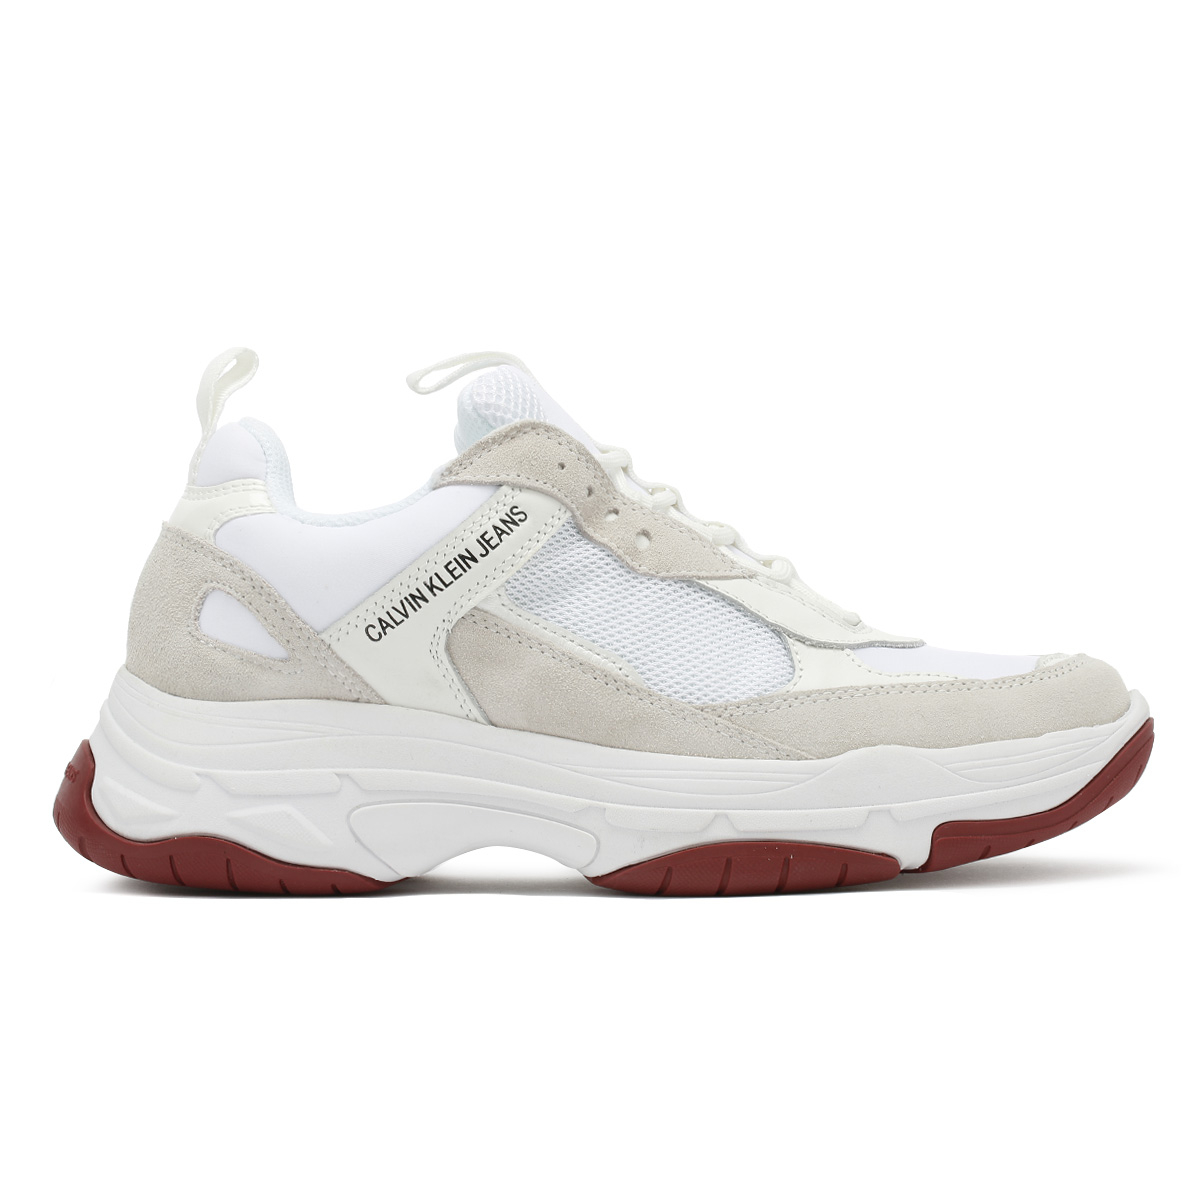 421735faf Calvin Klein Jeans Womens Trainers White Maya Chunky Lace Up Sport ...